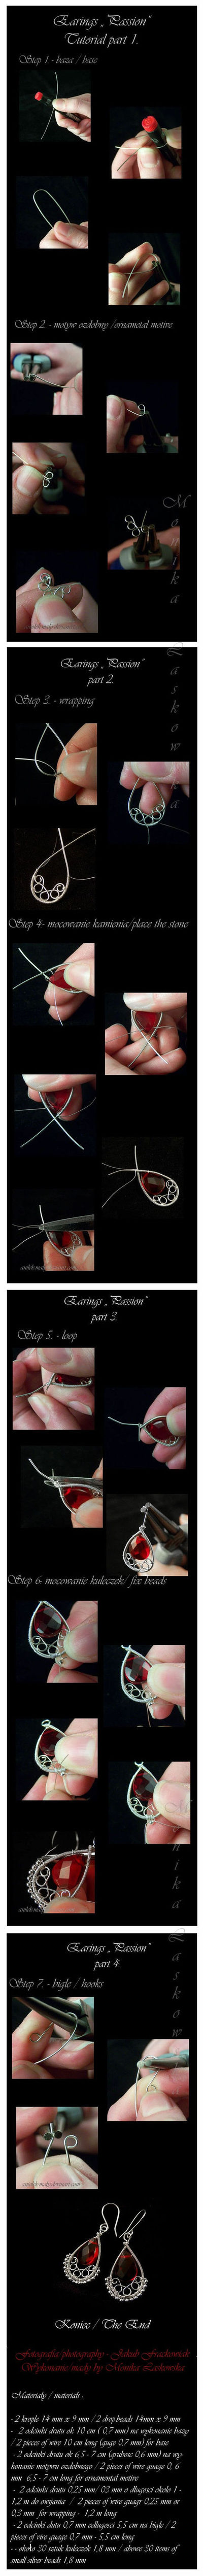 diy, diy projects, diy craft, handmade, diy passion earrings